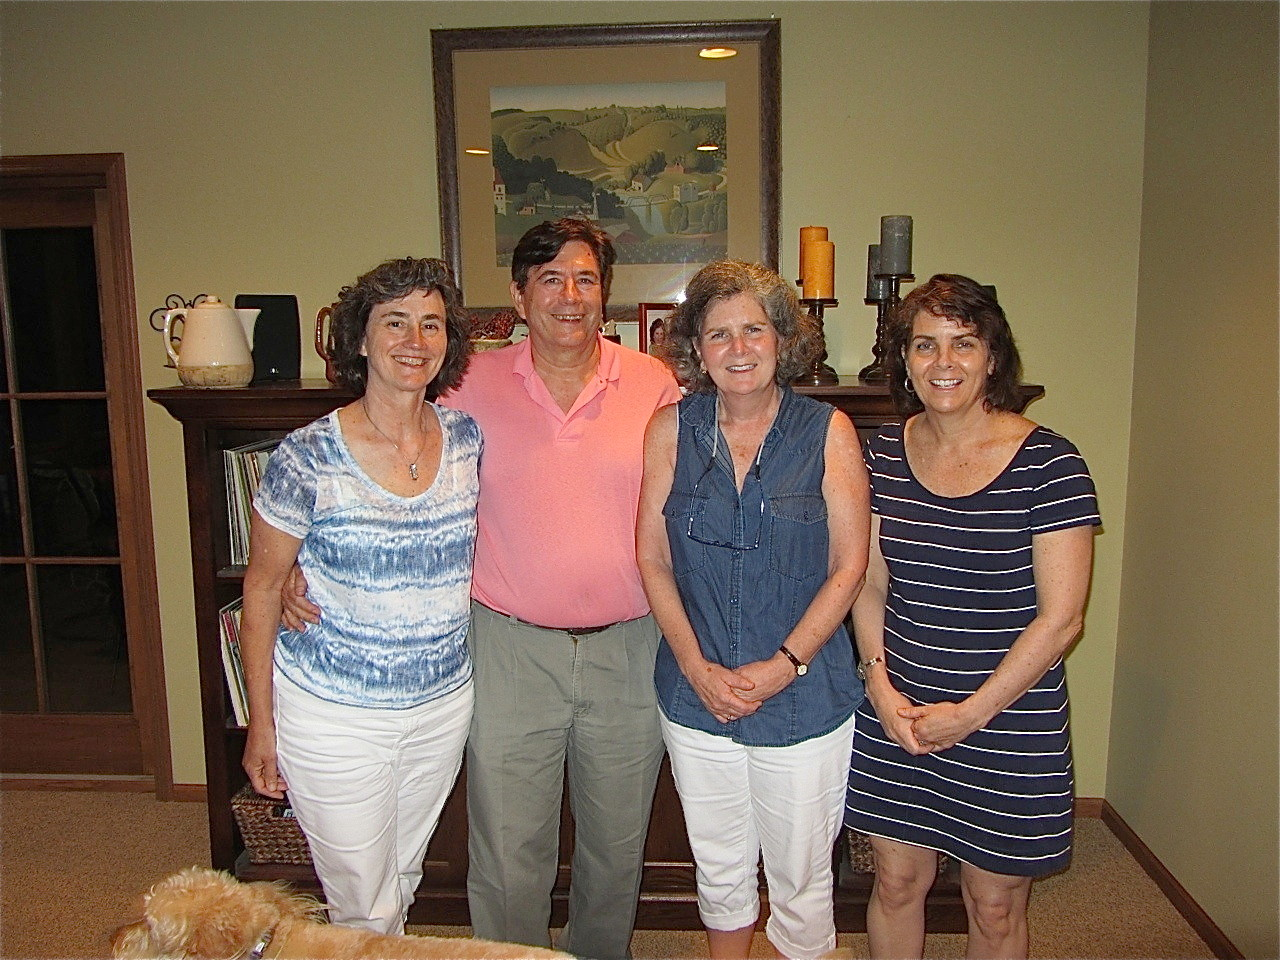 Ann Wagner Ackerman, John Wagner, Jane Elinson & Nancy Wagner (daughter & son of John & Mary Lou Wagner & daughters of Joe & Monica Wagner Minneapolis, MN July, 2014)